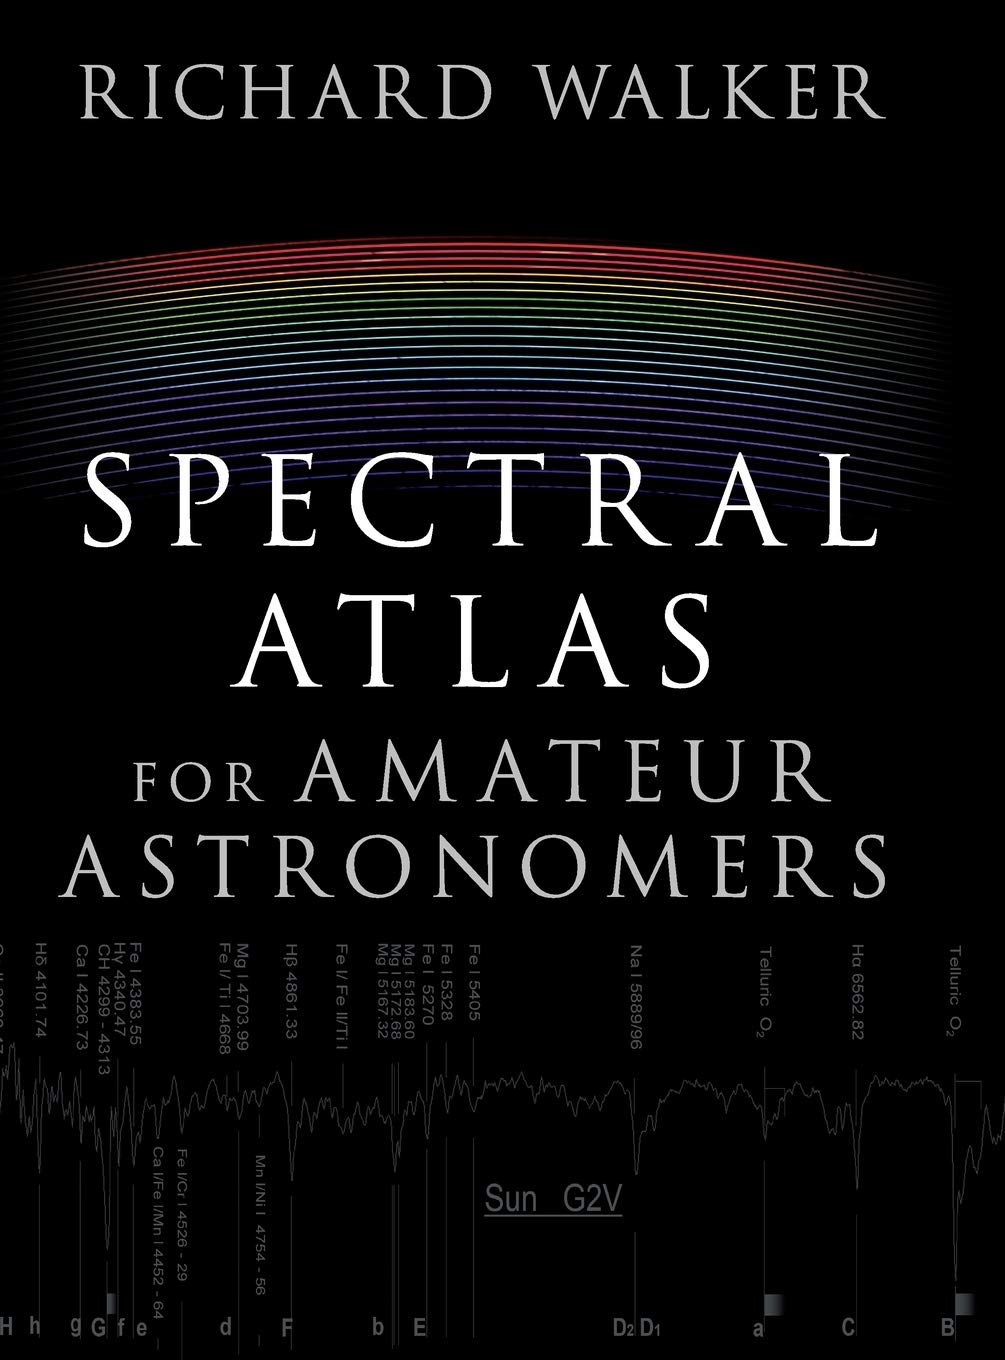 Spectral Atlas For Amateur Astronomers  A Guide To The Spectra Of Astronomical Objects And Terrestrial Light Sources